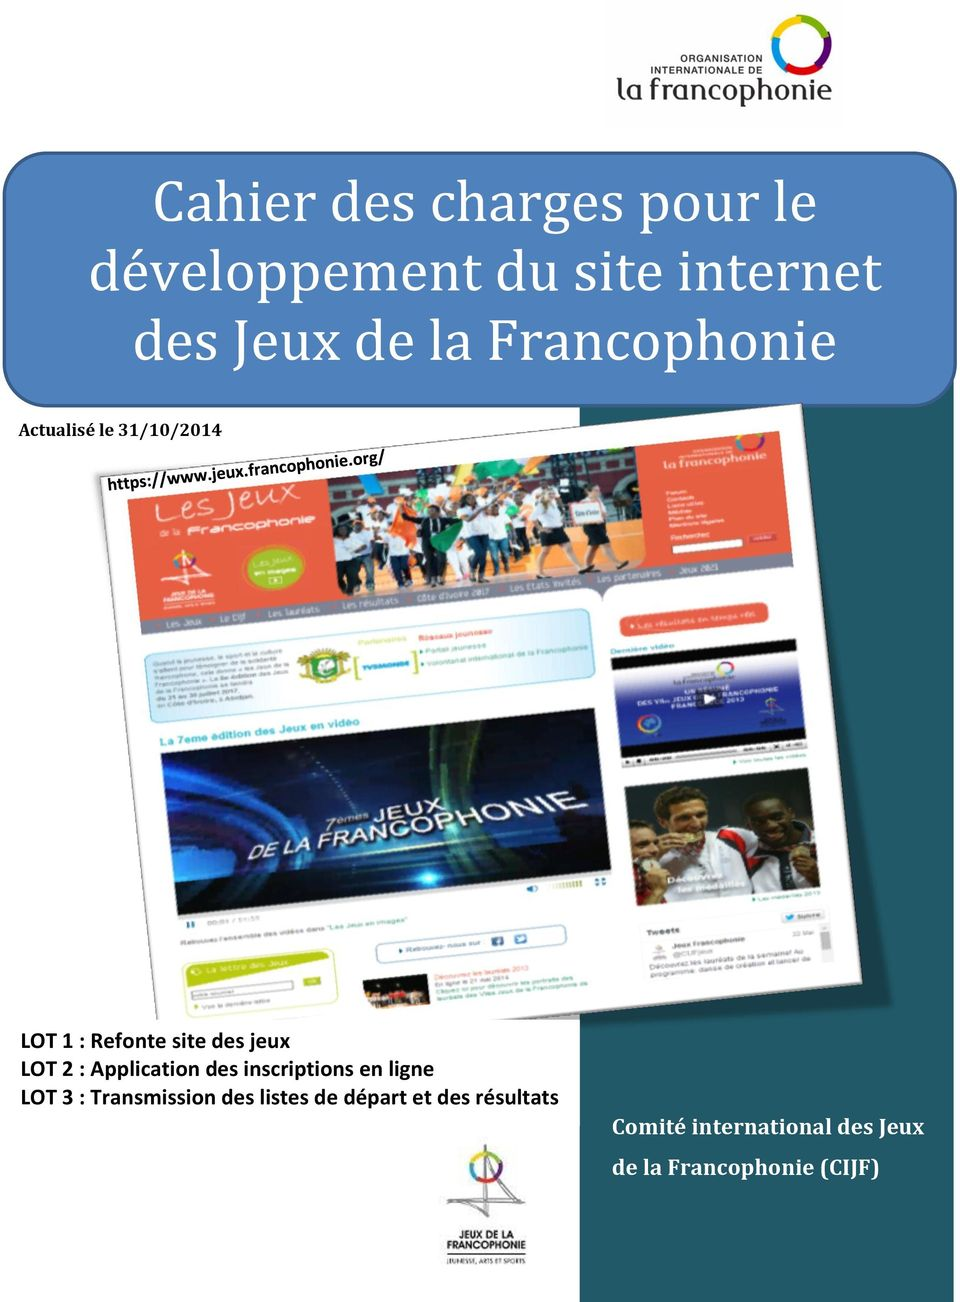 Application des inscriptions en ligne LOT 3 : Transmission des listes de